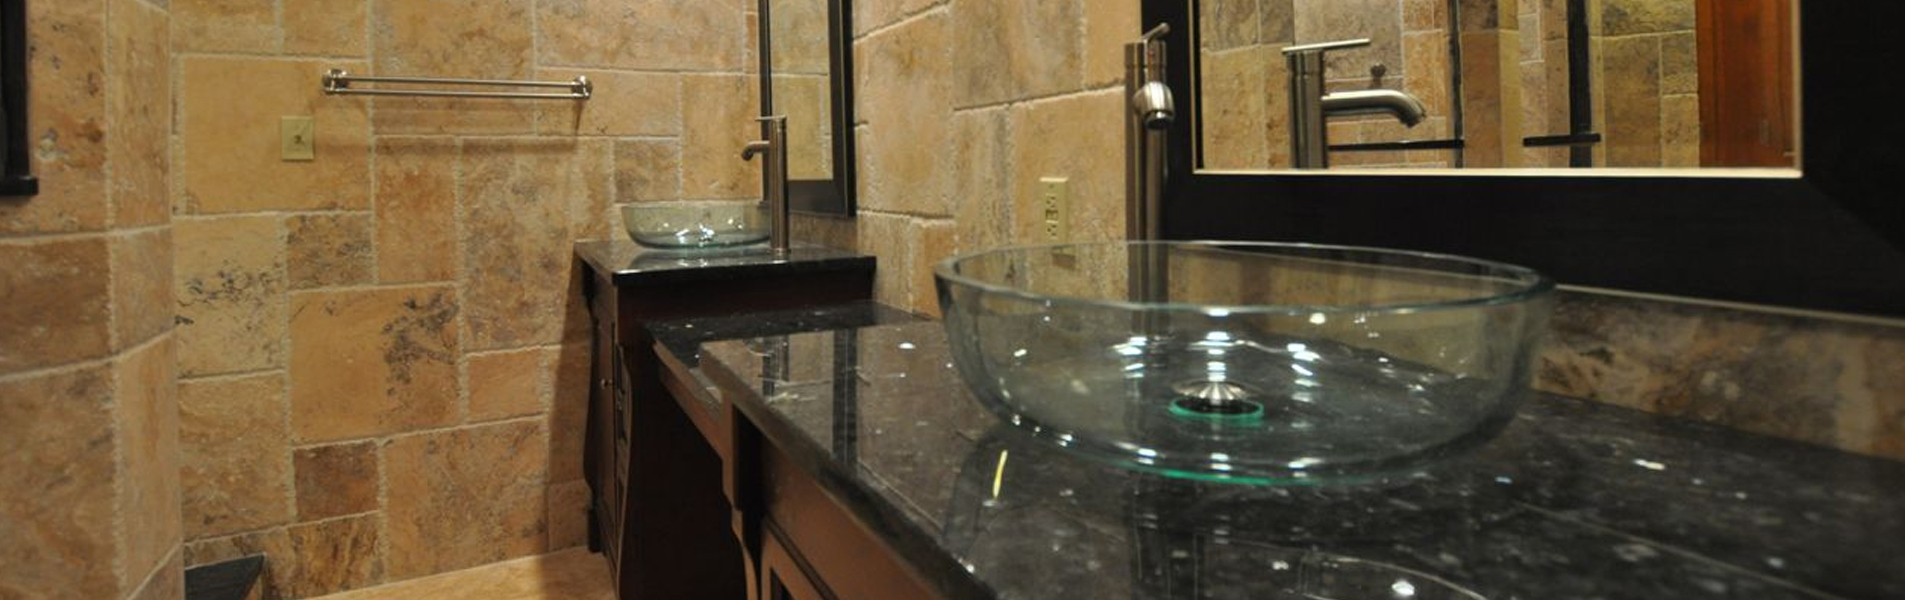 marble countertops San Leandro, CA